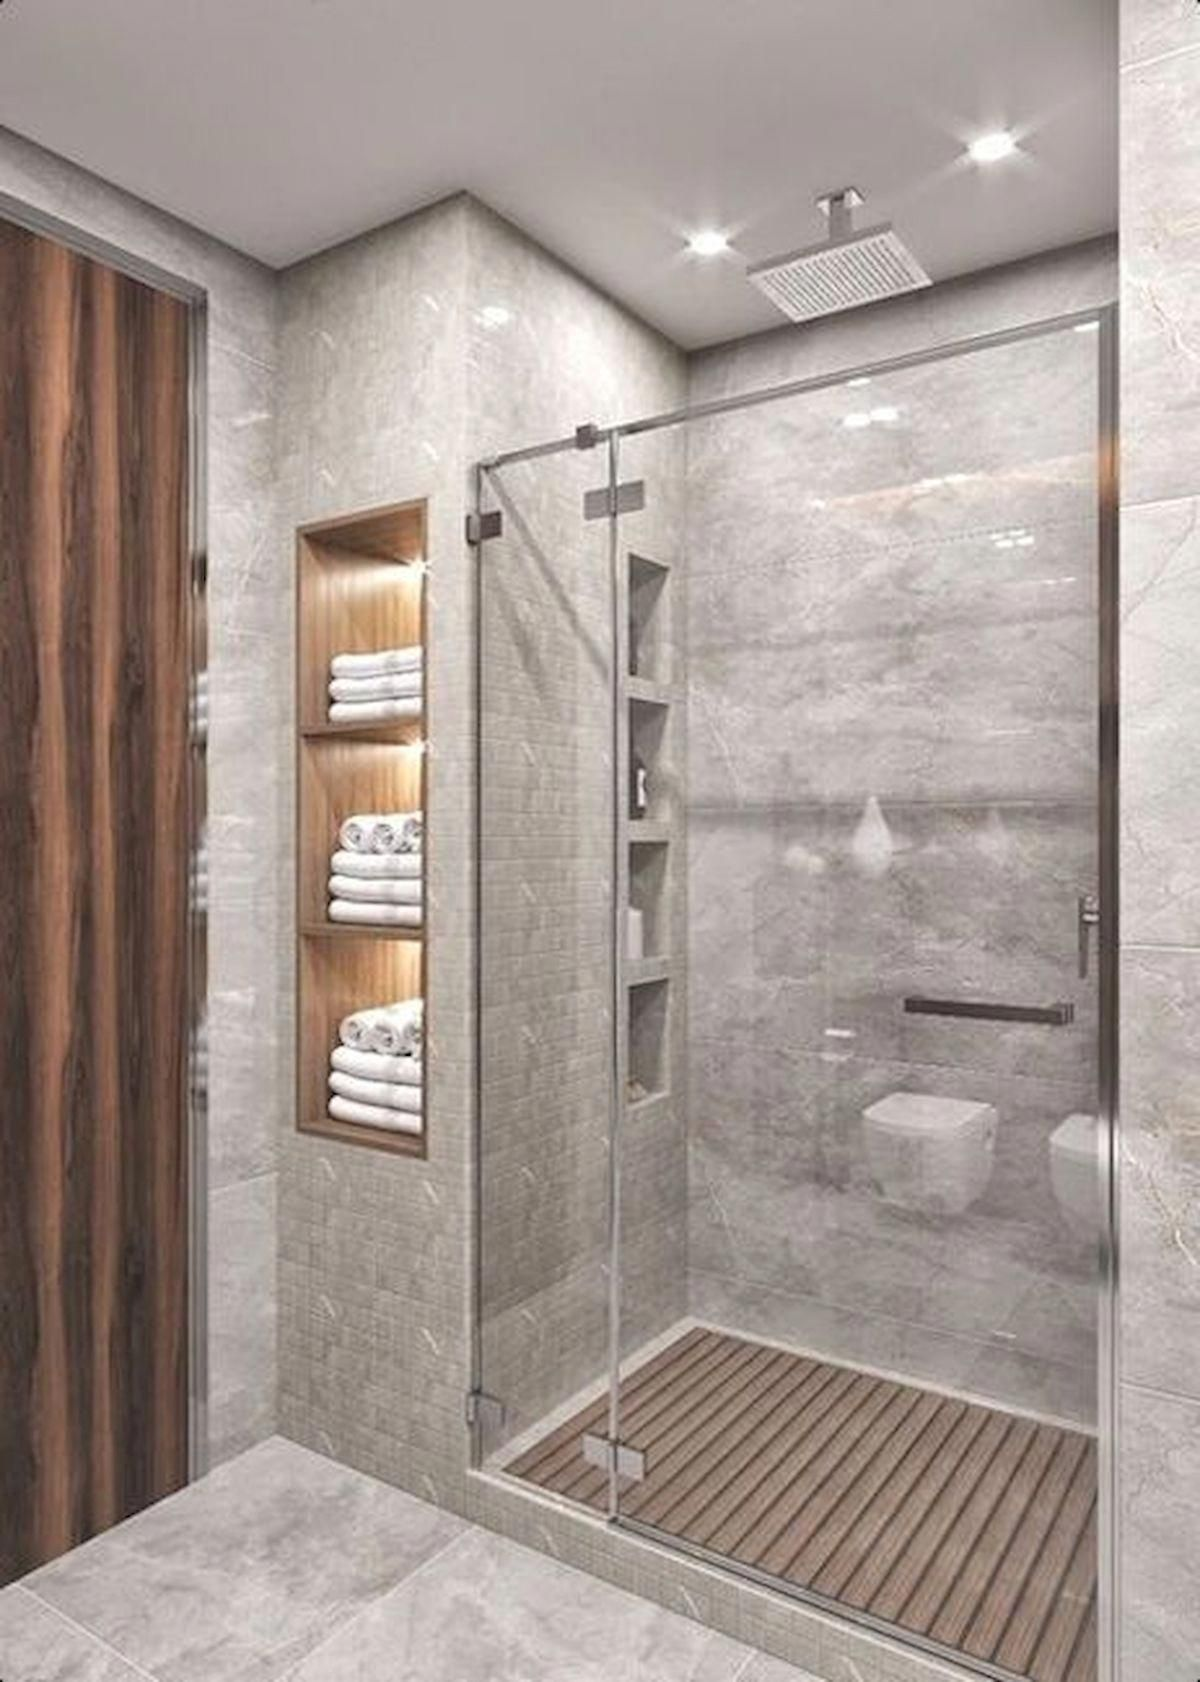 I Like This Fine Looking Photo Bathroomremodel With Images